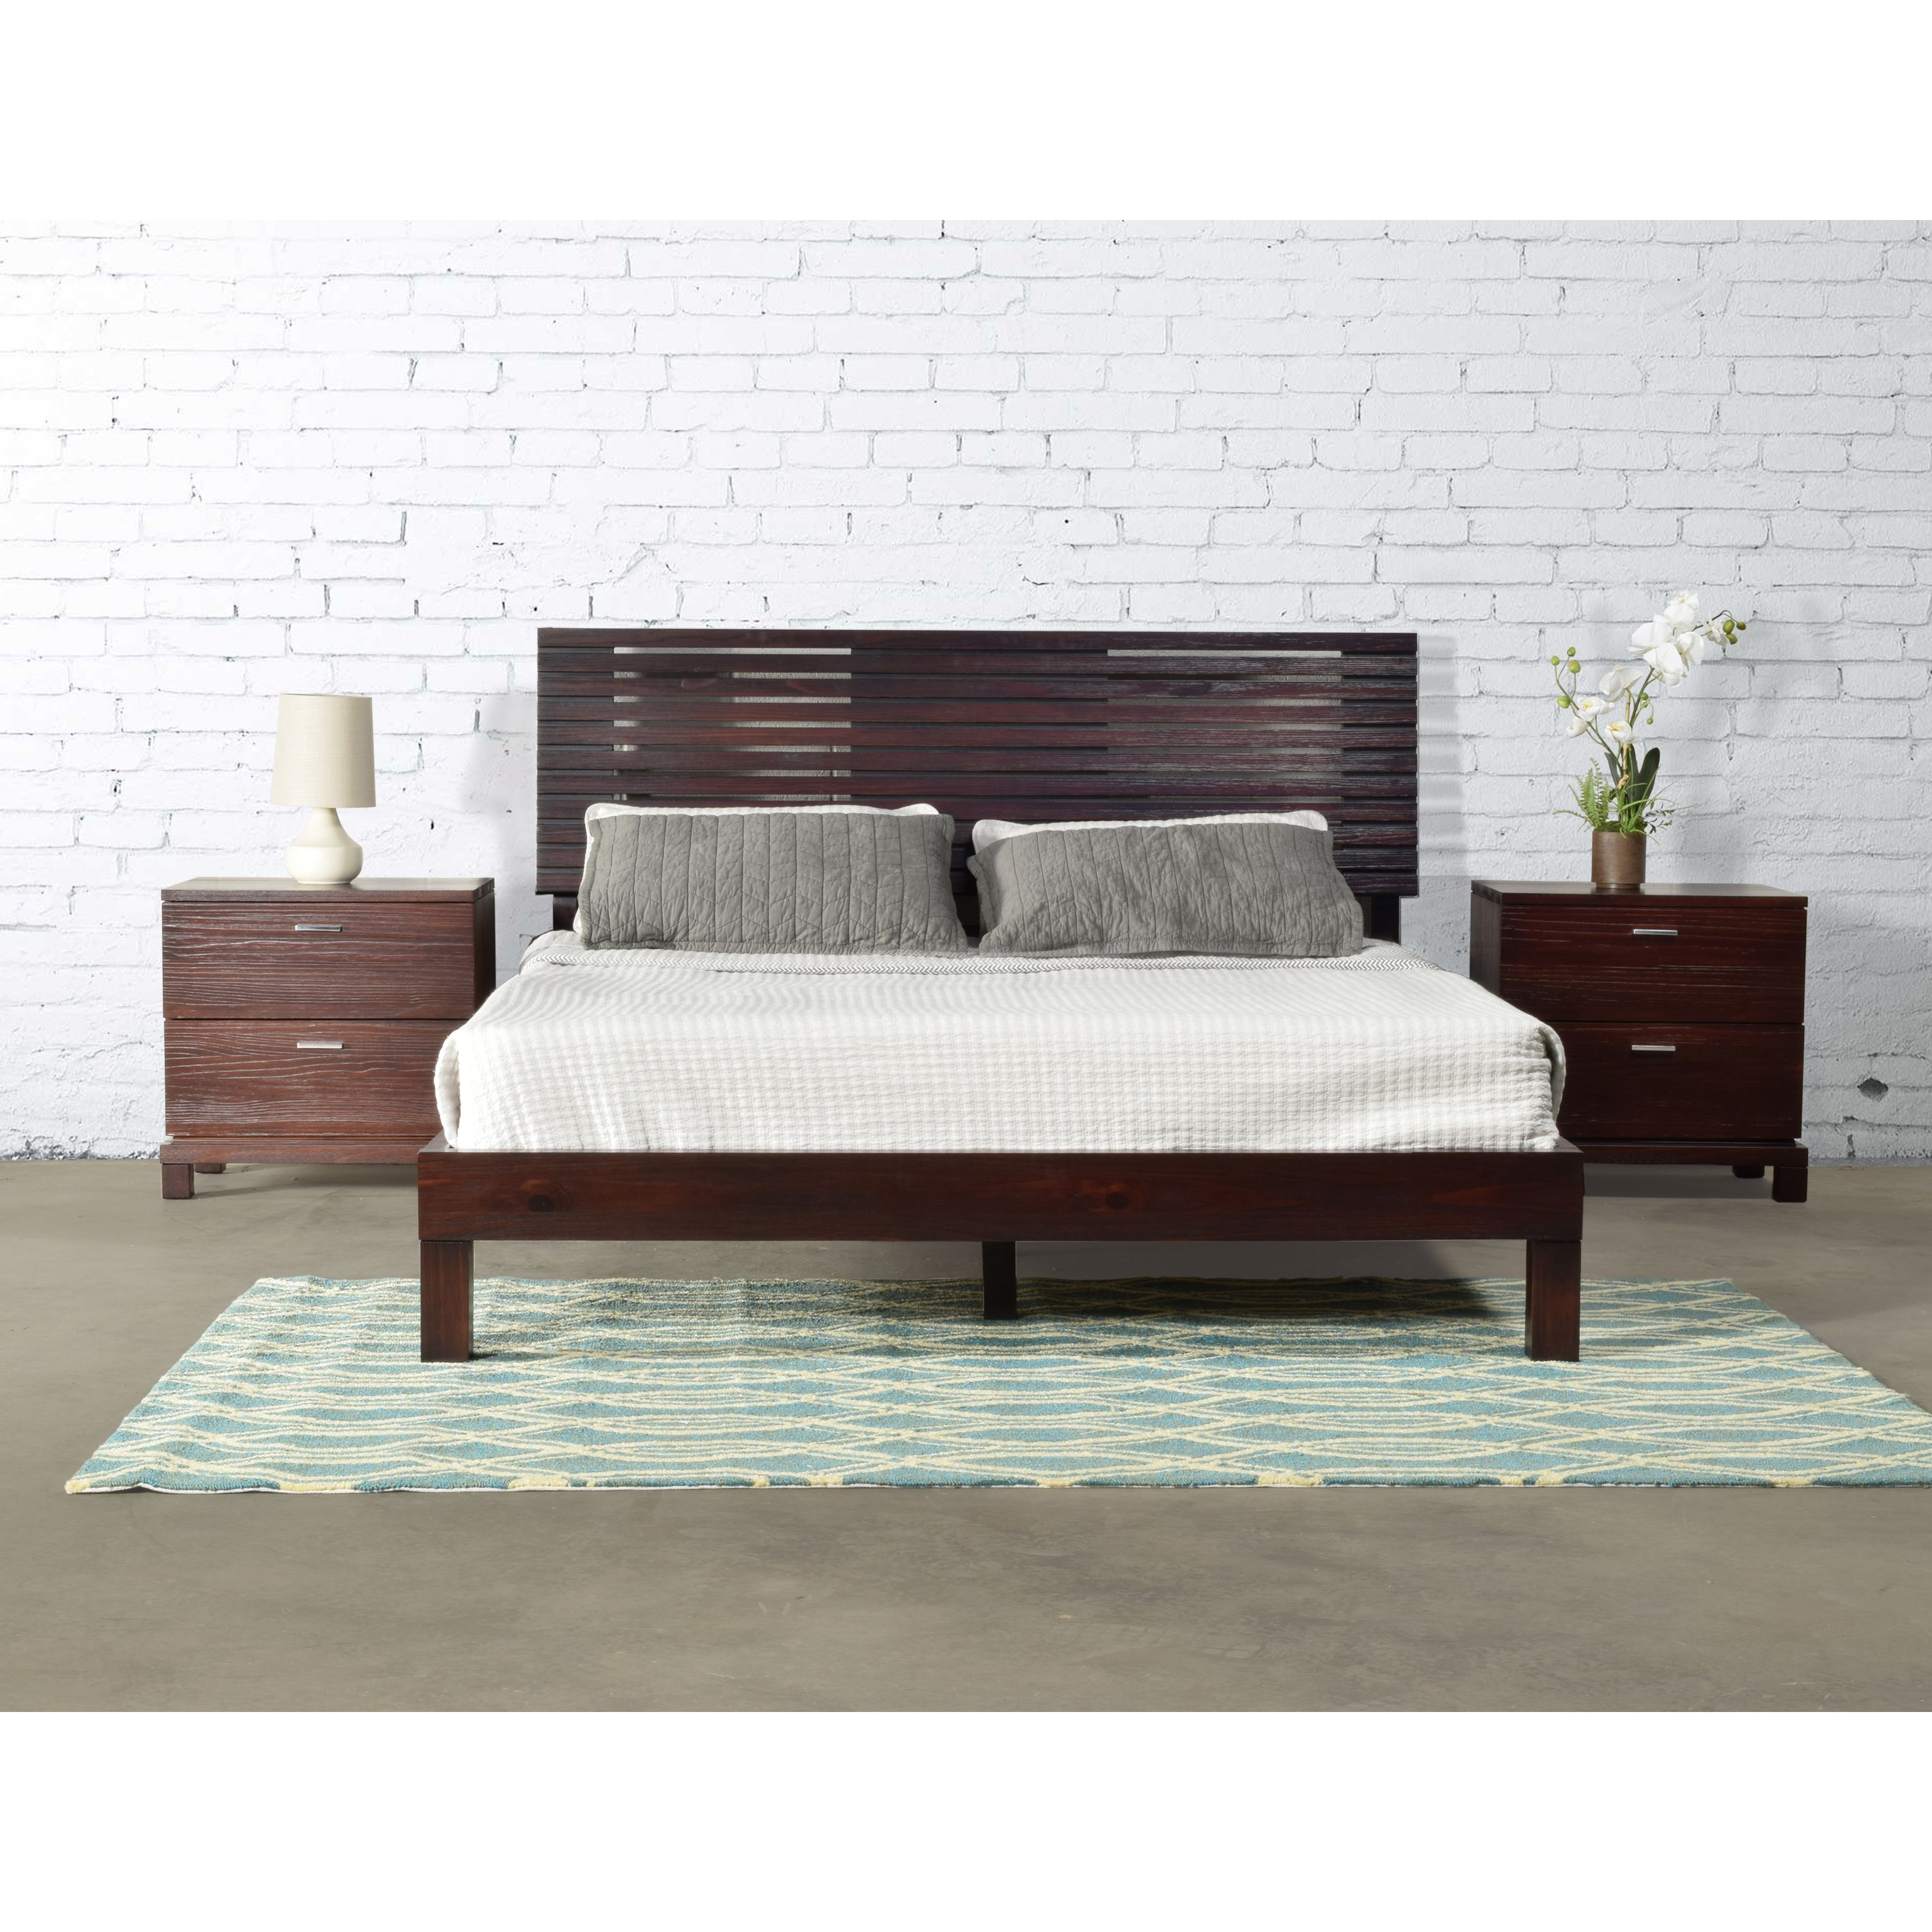 This Queen Bed Design Features A Slated Headboard And Footboard